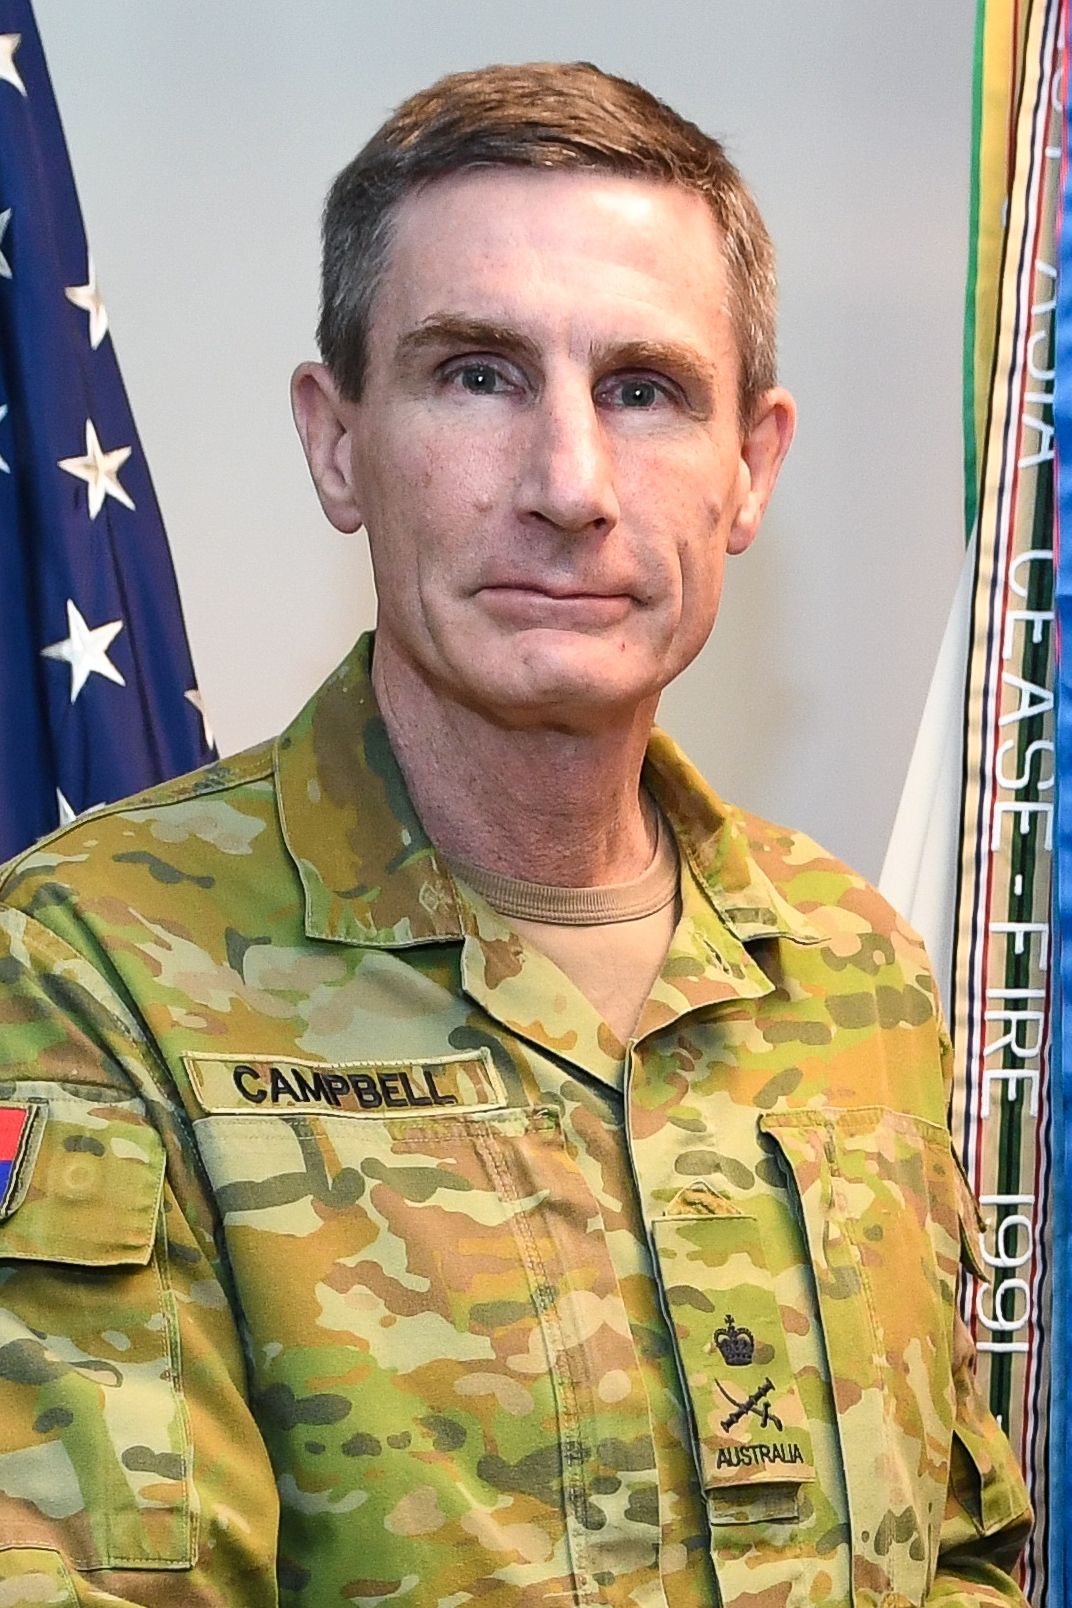 Angus Campbell (general) - Wikipedia